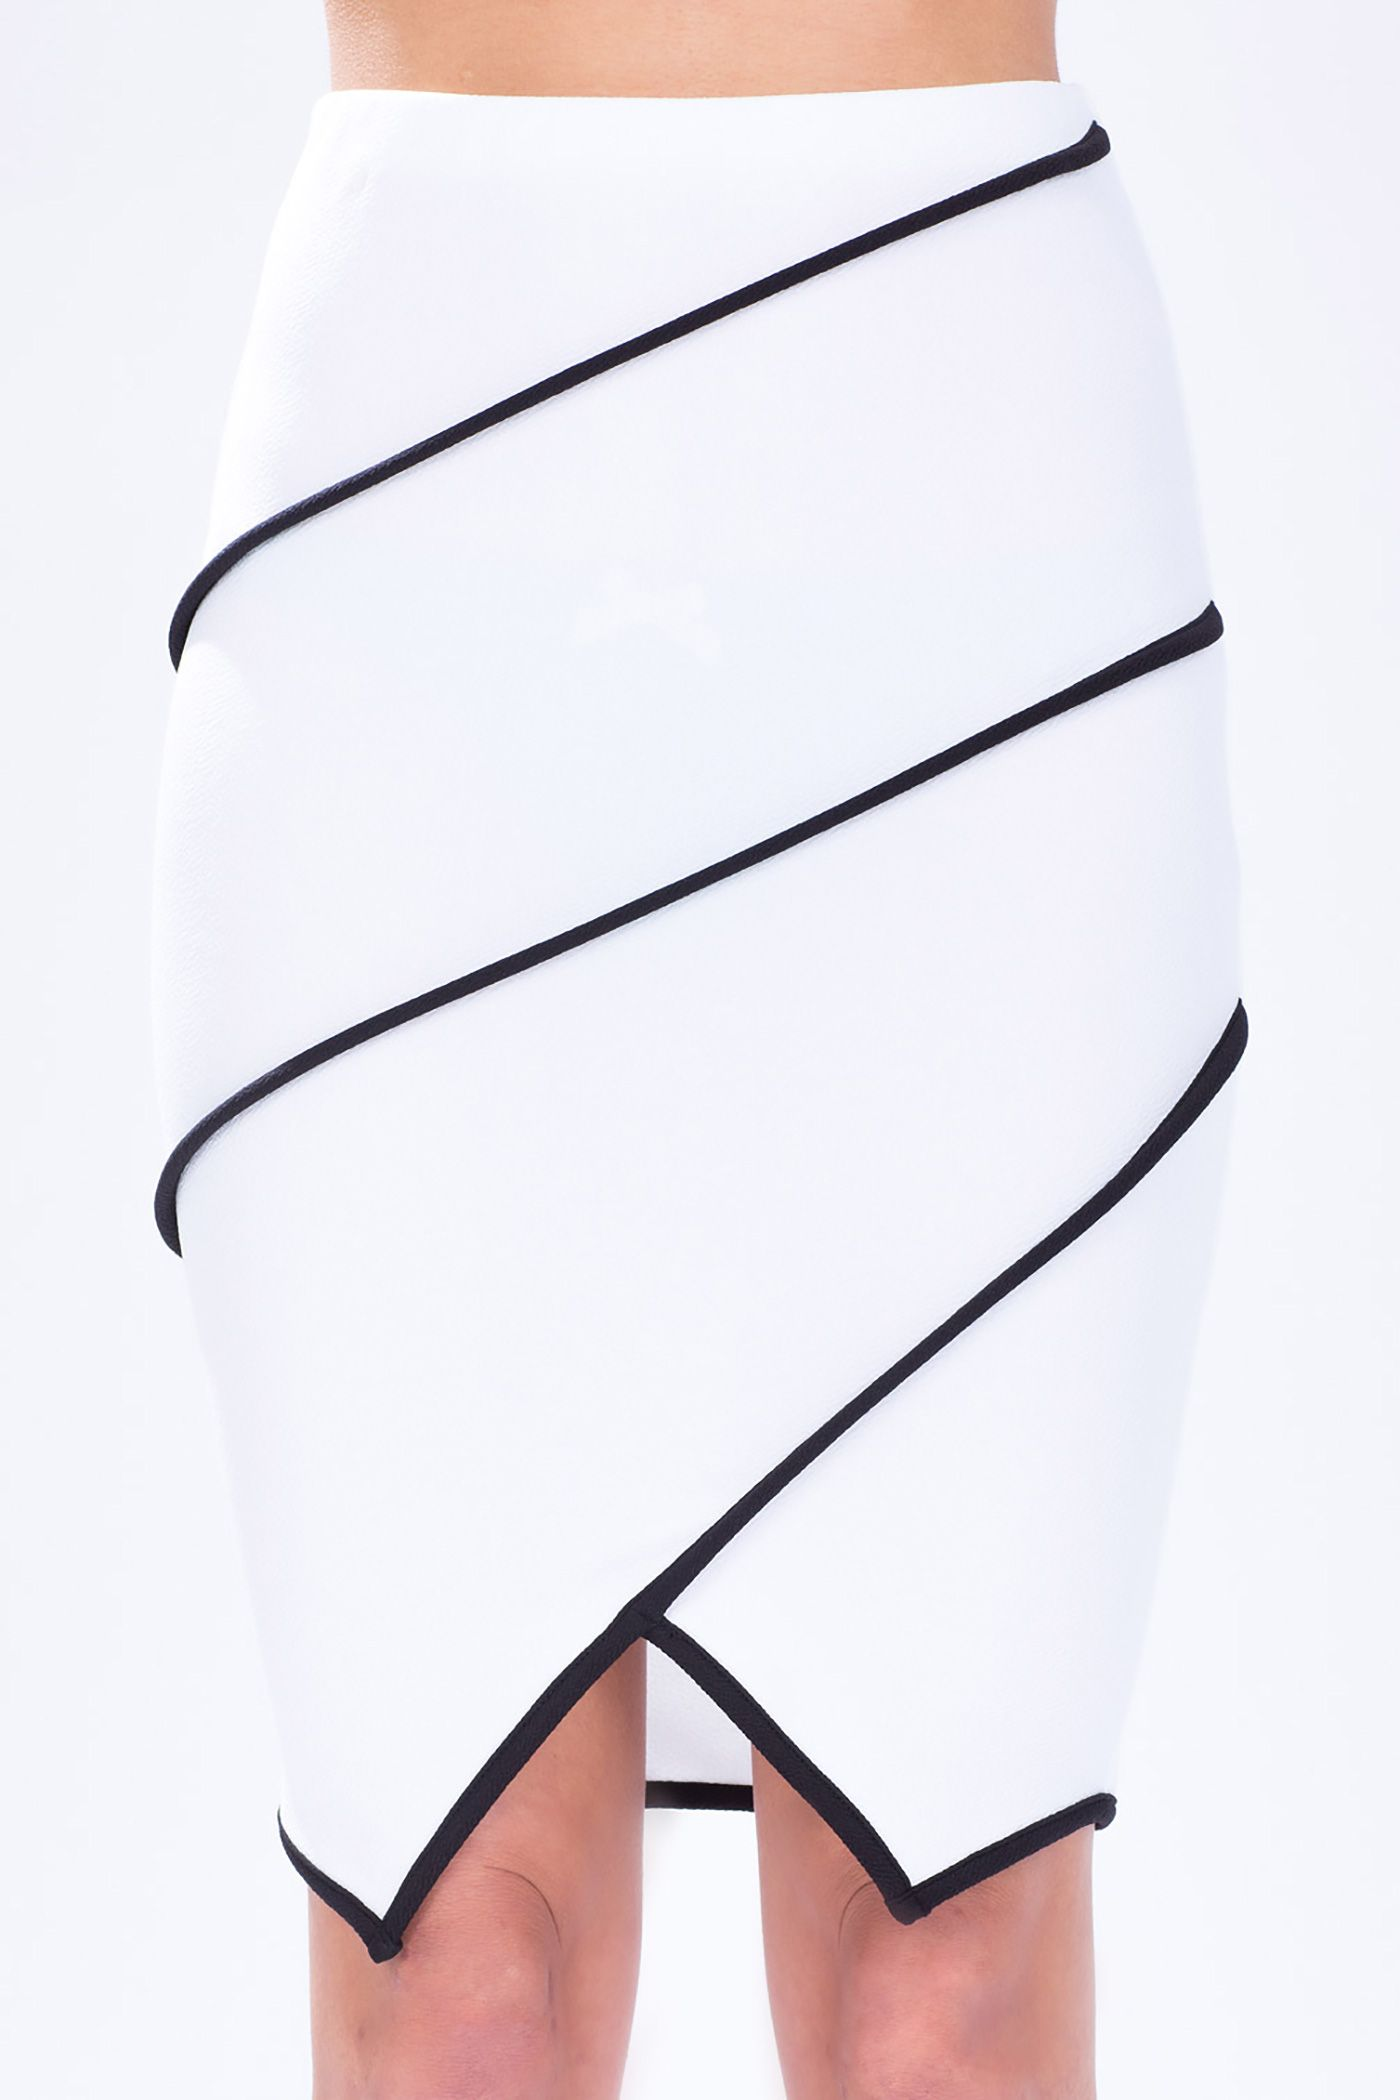 Piped Origami Pencil Skirt | Fashion designers | Pinterest | Rock ...